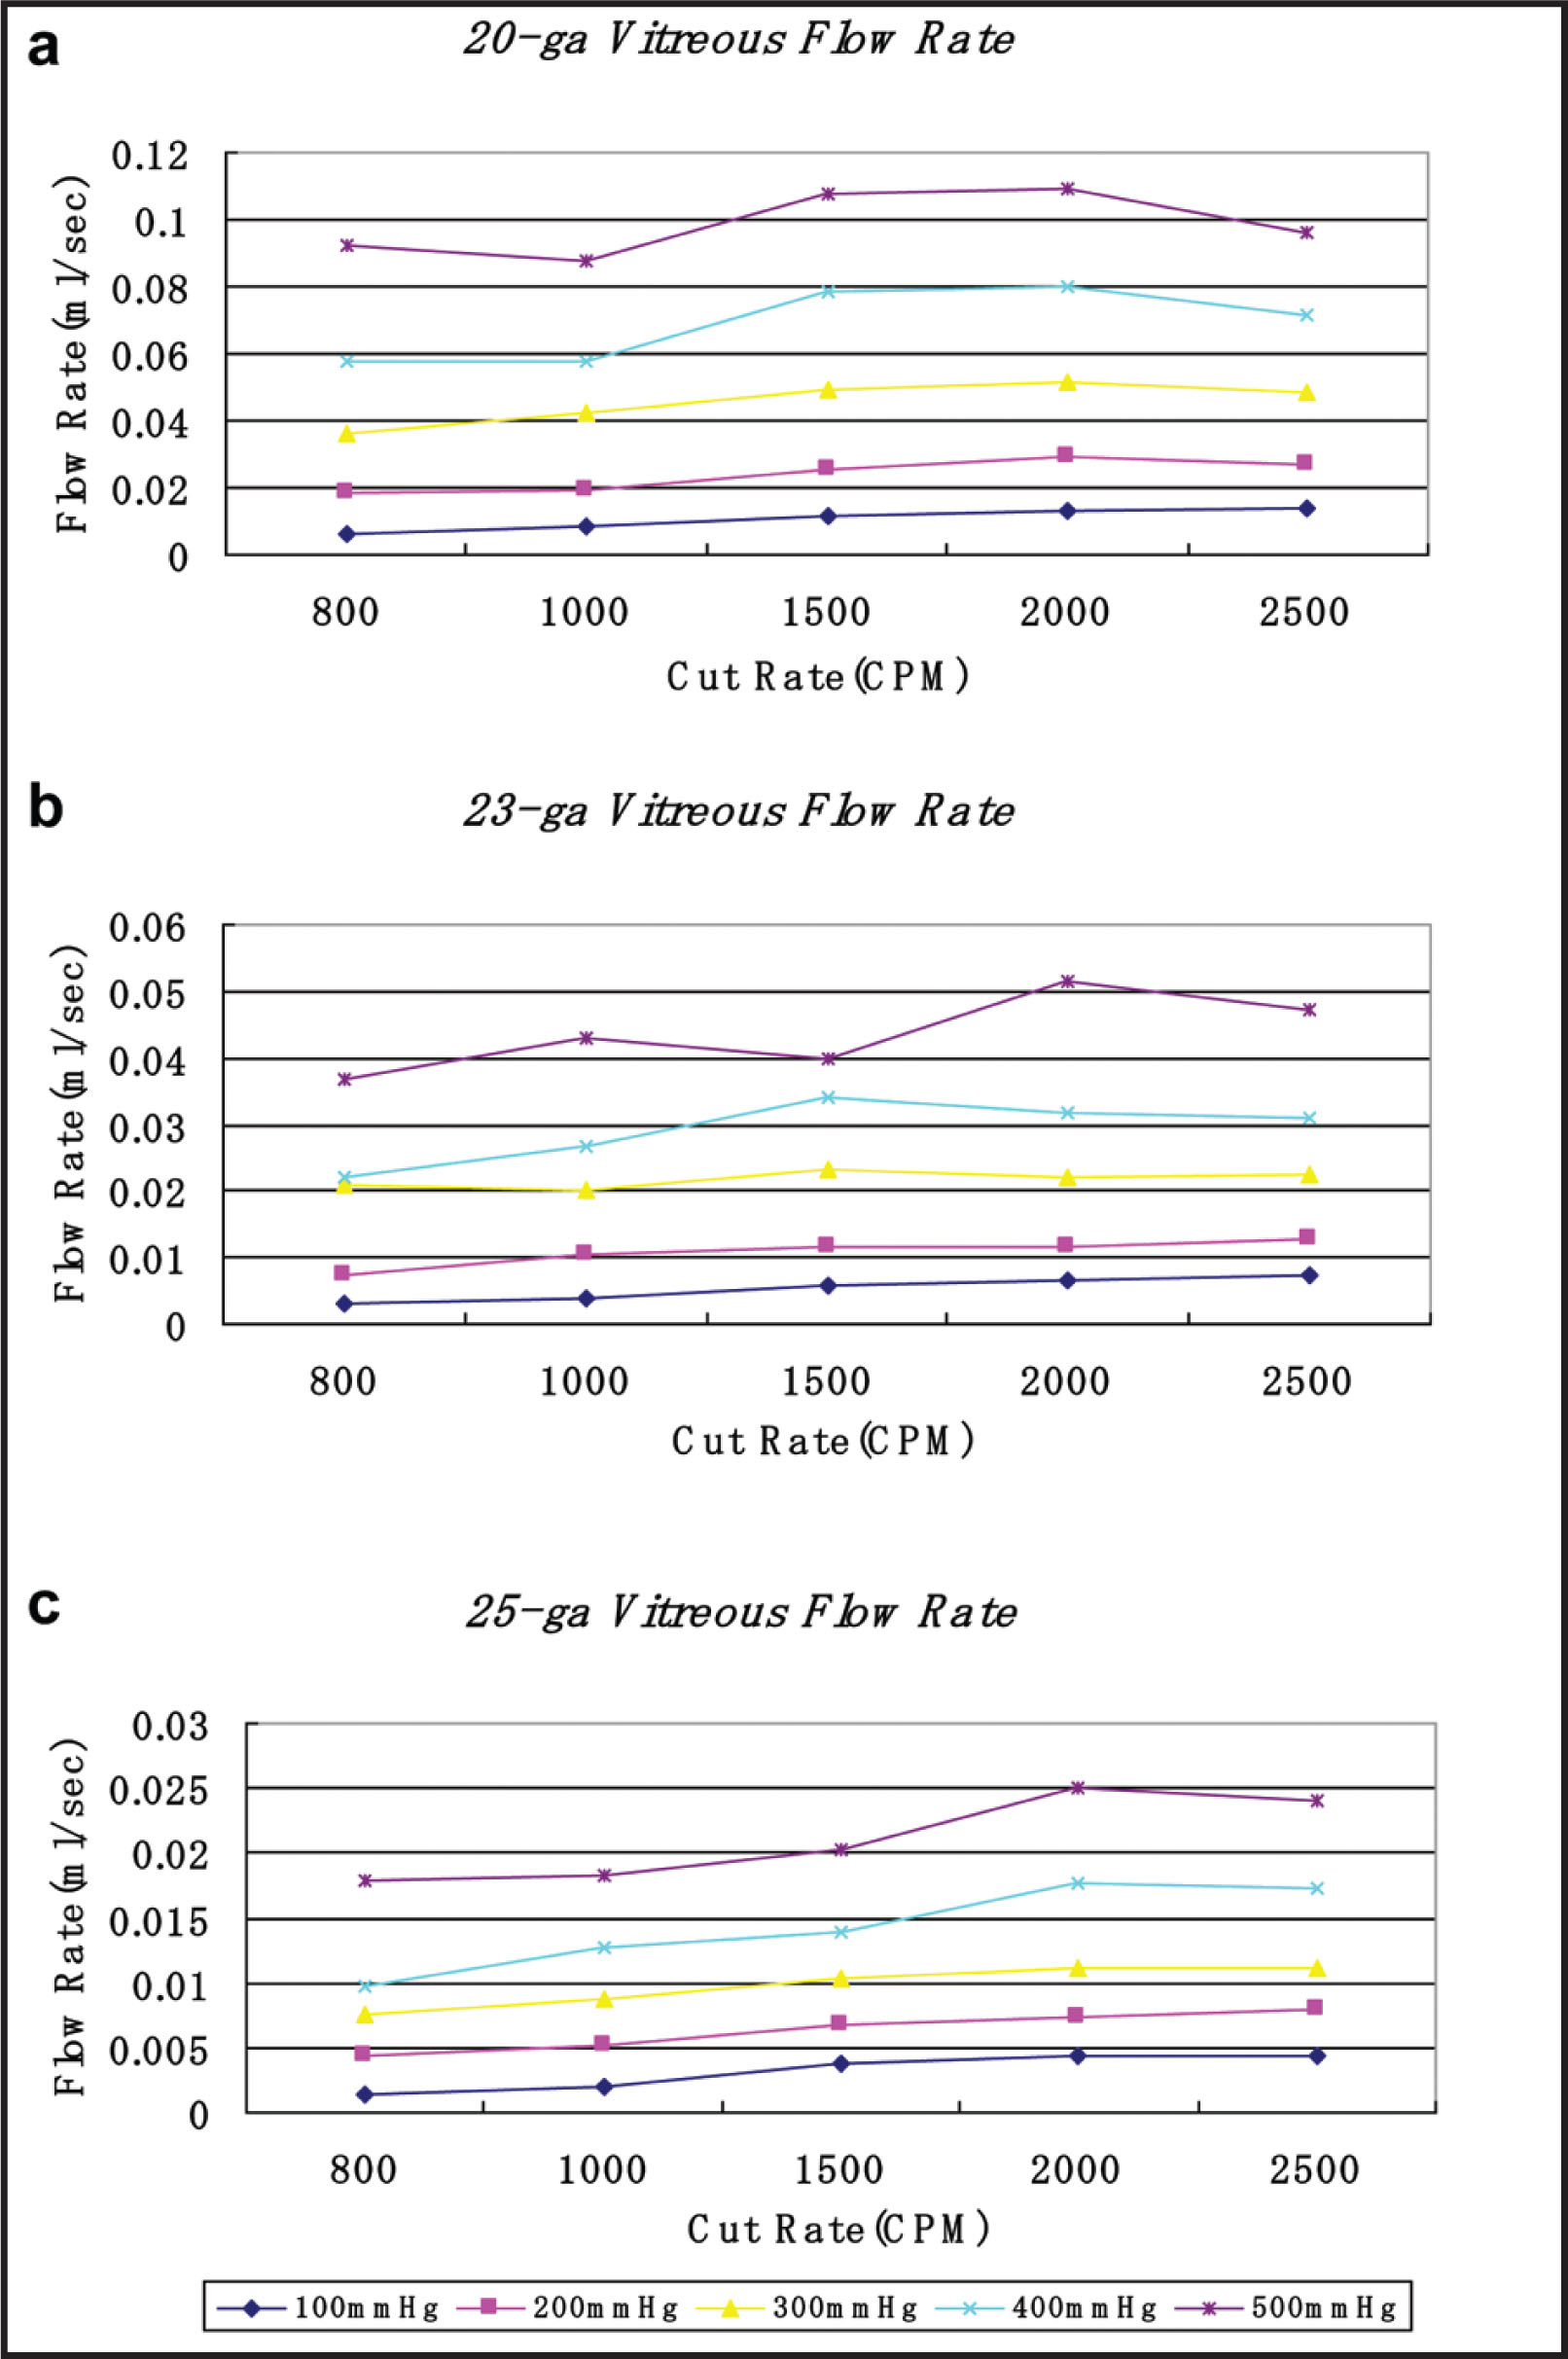 Vitreous Flow Rates of 20-Gauge (a), 23-Gauge (b), and 25-Gauge (c) Cutters. Vitreous Flow Rates for All Three Gauges Showed a Slightly Increased Trend with Increasing Cut-Rate. CPM = Cuts per Minute.